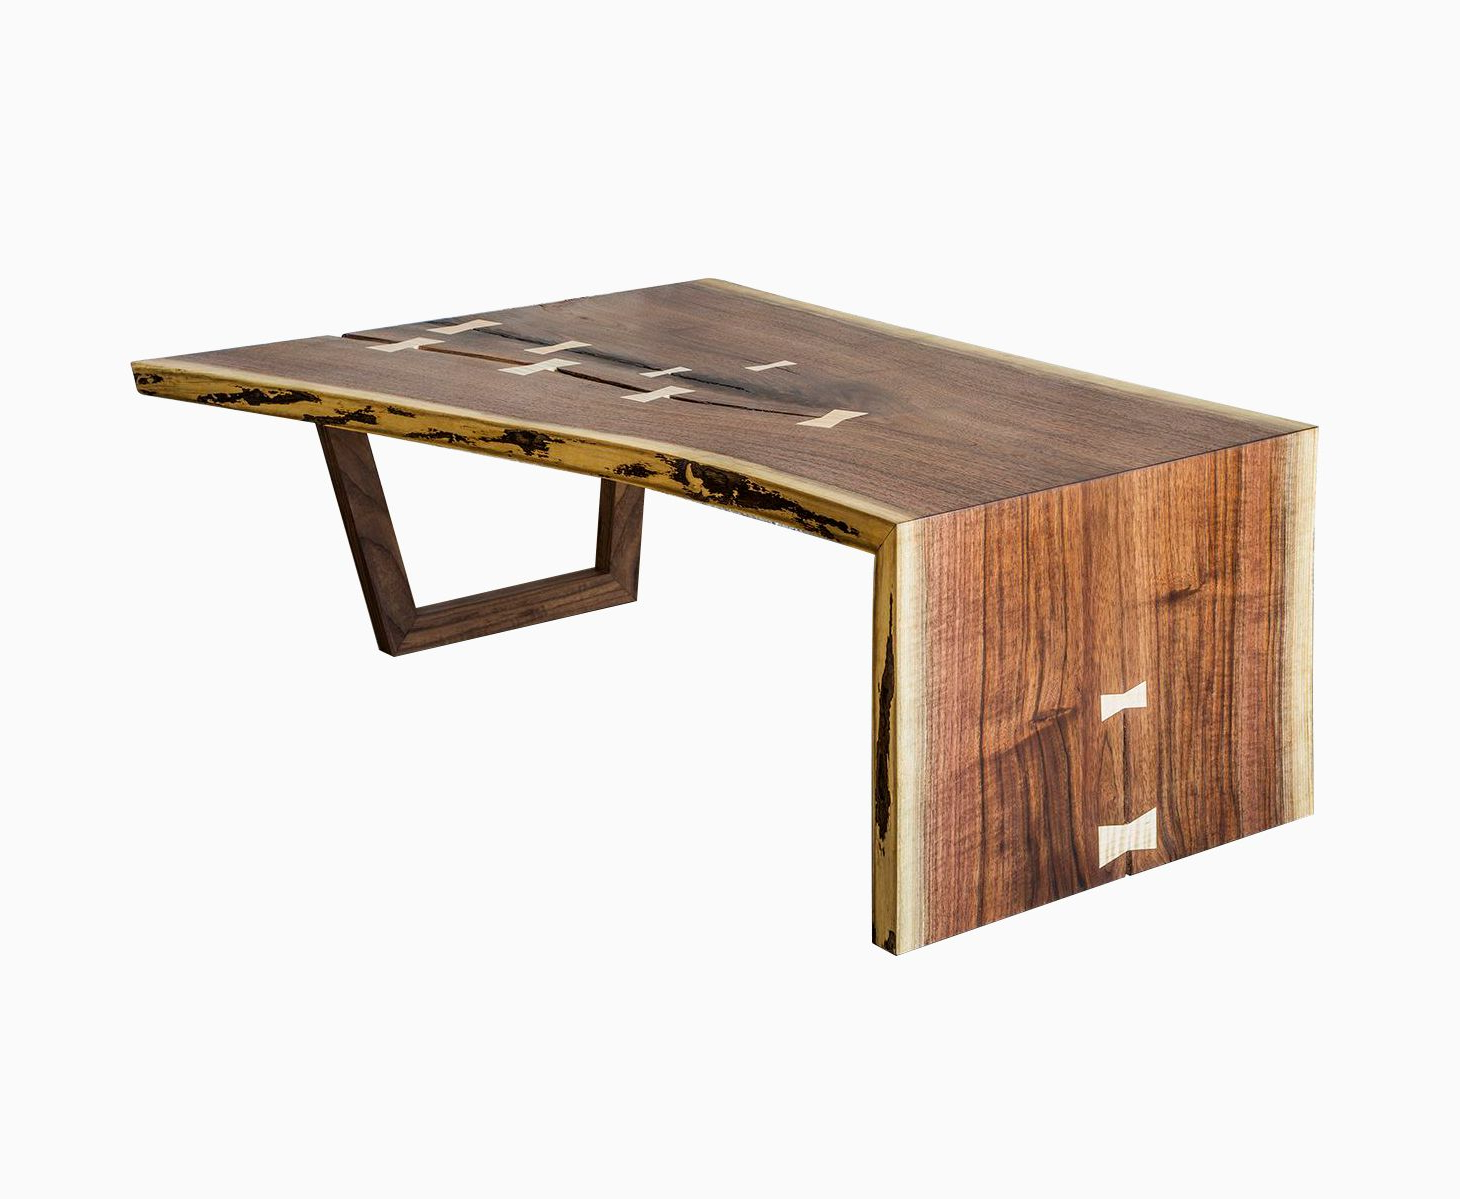 Buy A Hand Crafted Live Edge Walnut Waterfall Coffee Table, Made To With Regard To Latest Waterfall Coffee Tables (Gallery 3 of 20)